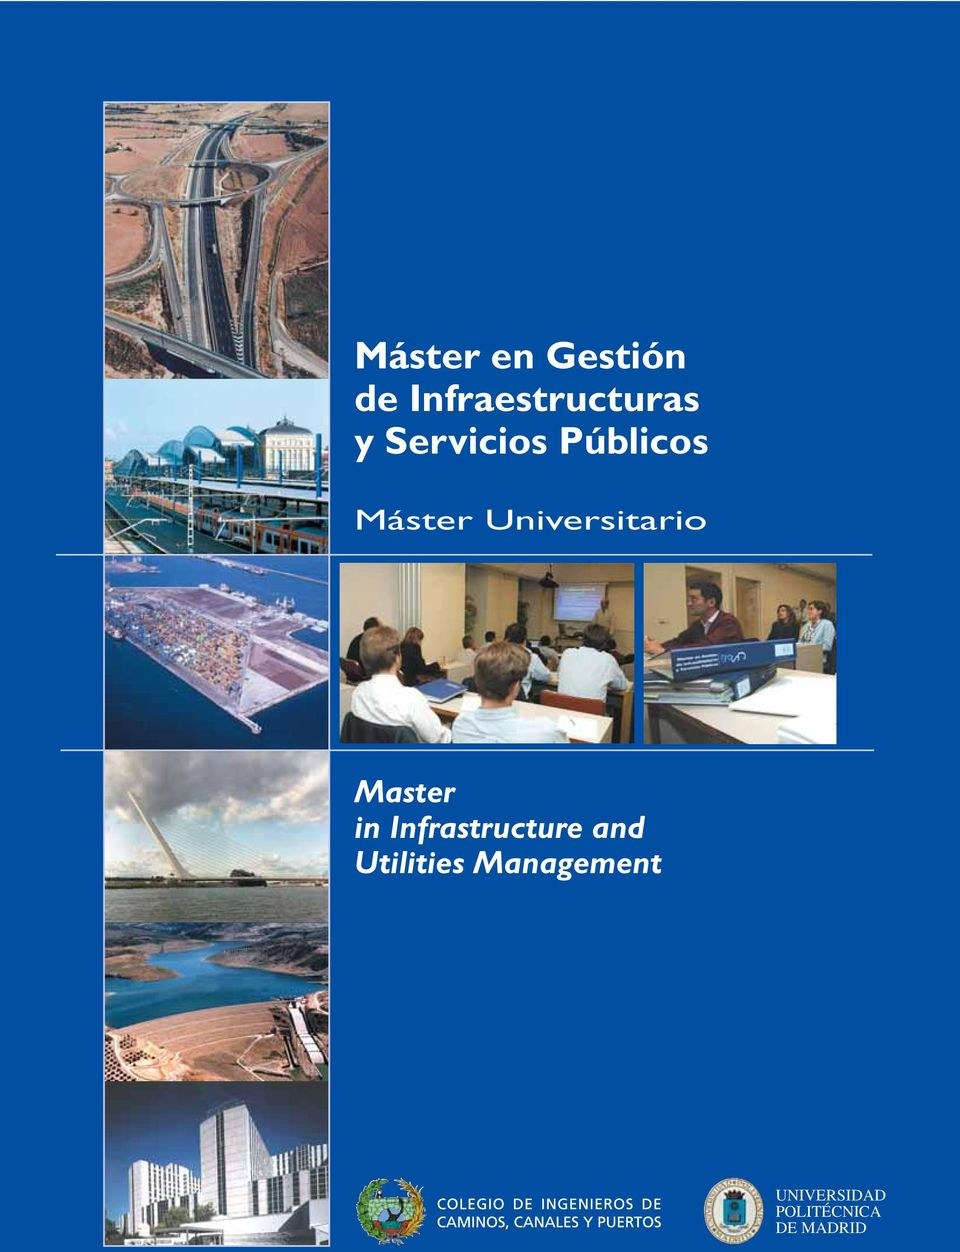 Master in Infrastructure and Utilities